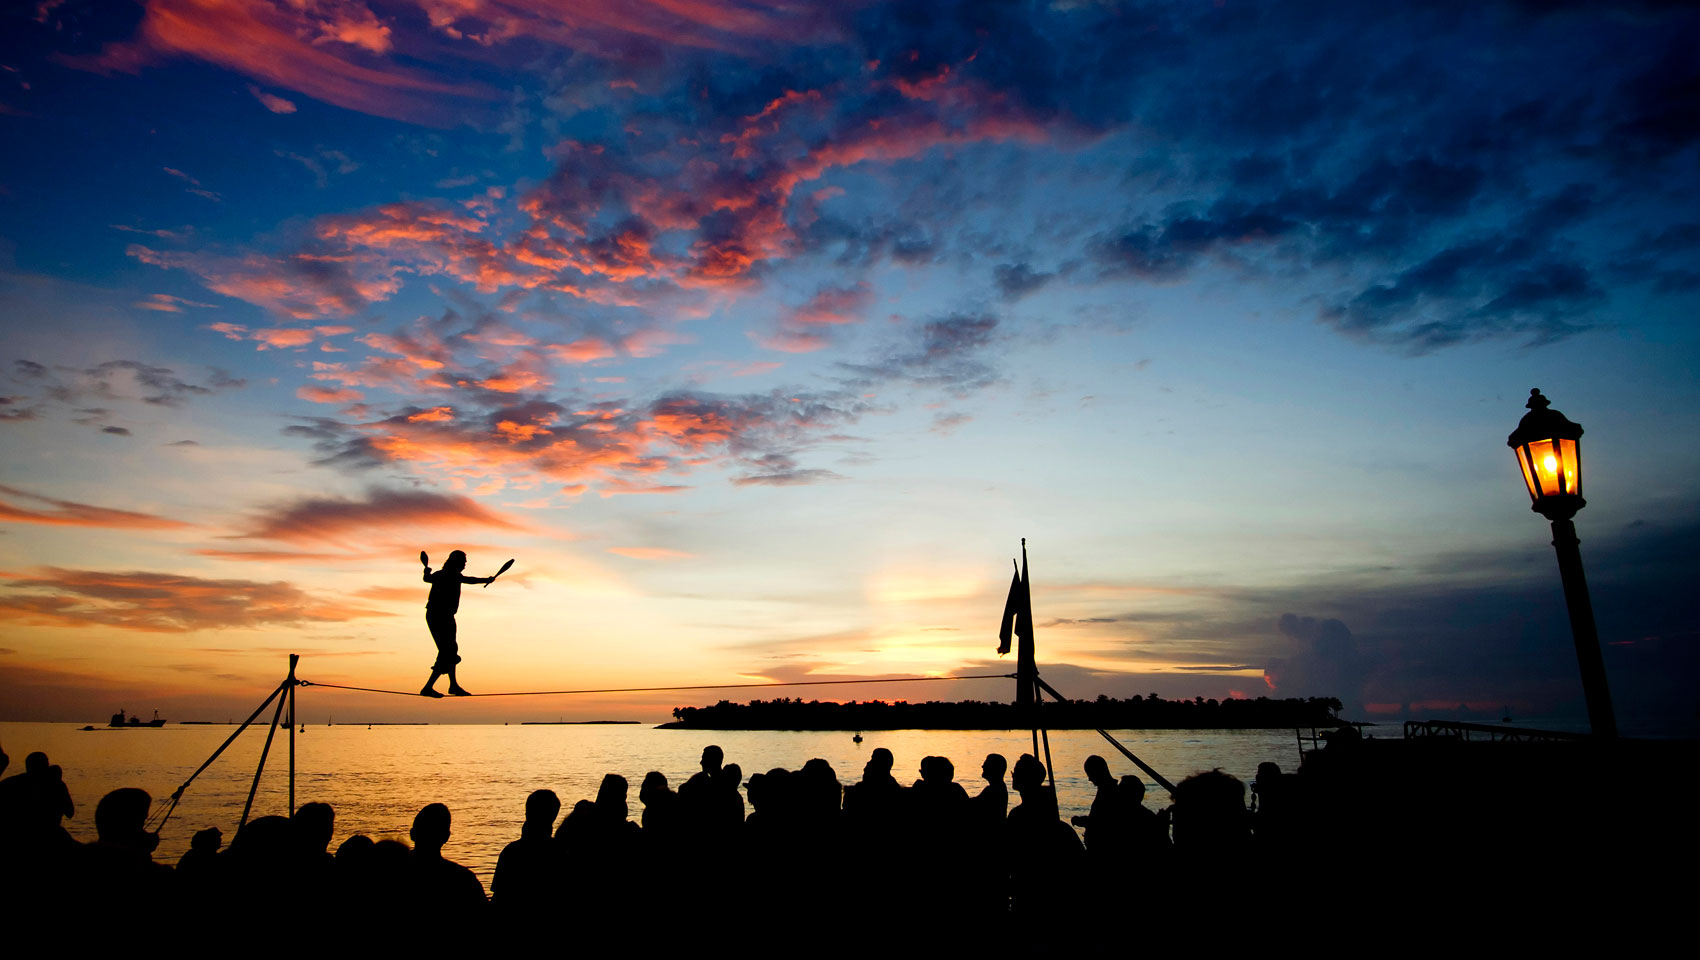 sunset event at mallory square with street performers and a crowd watching.